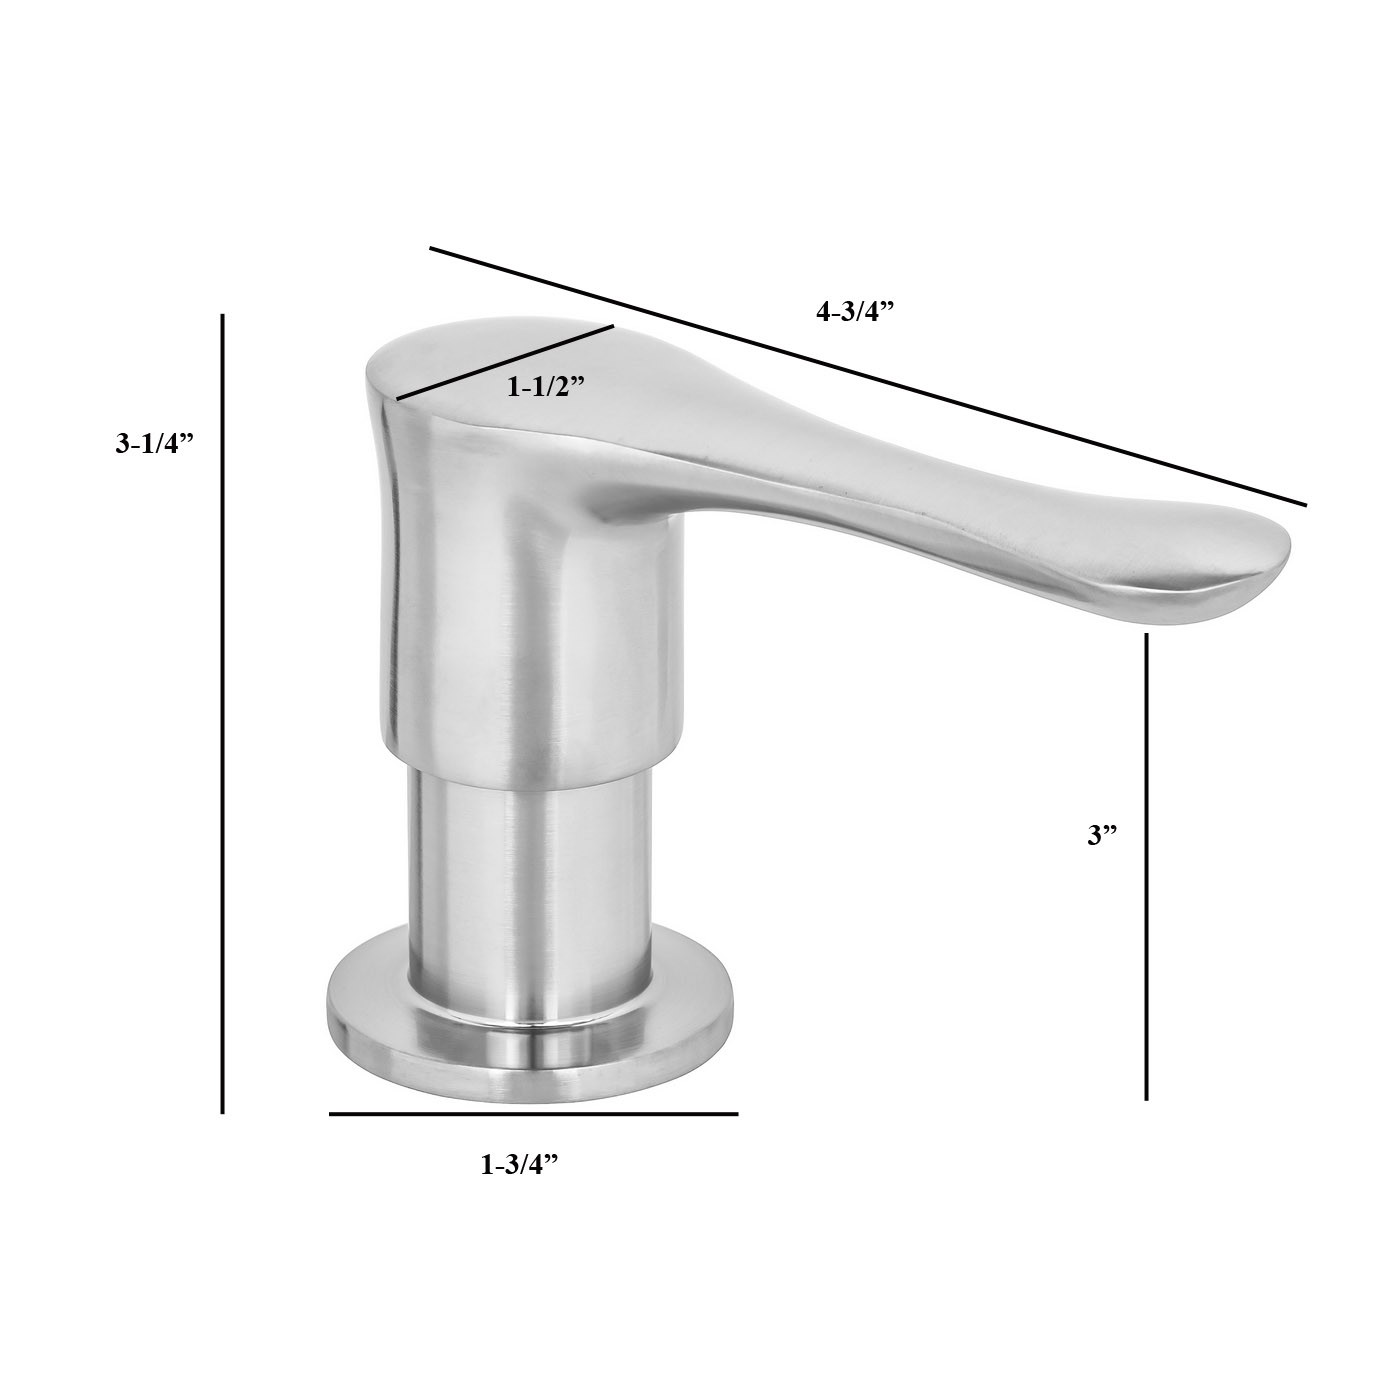 Ariel Built In Round Solid Brass Pump Deck Mount Modern Hand Dish Soap Dispenser Stainless Steel Brushed Nickel All Metal Construction 13